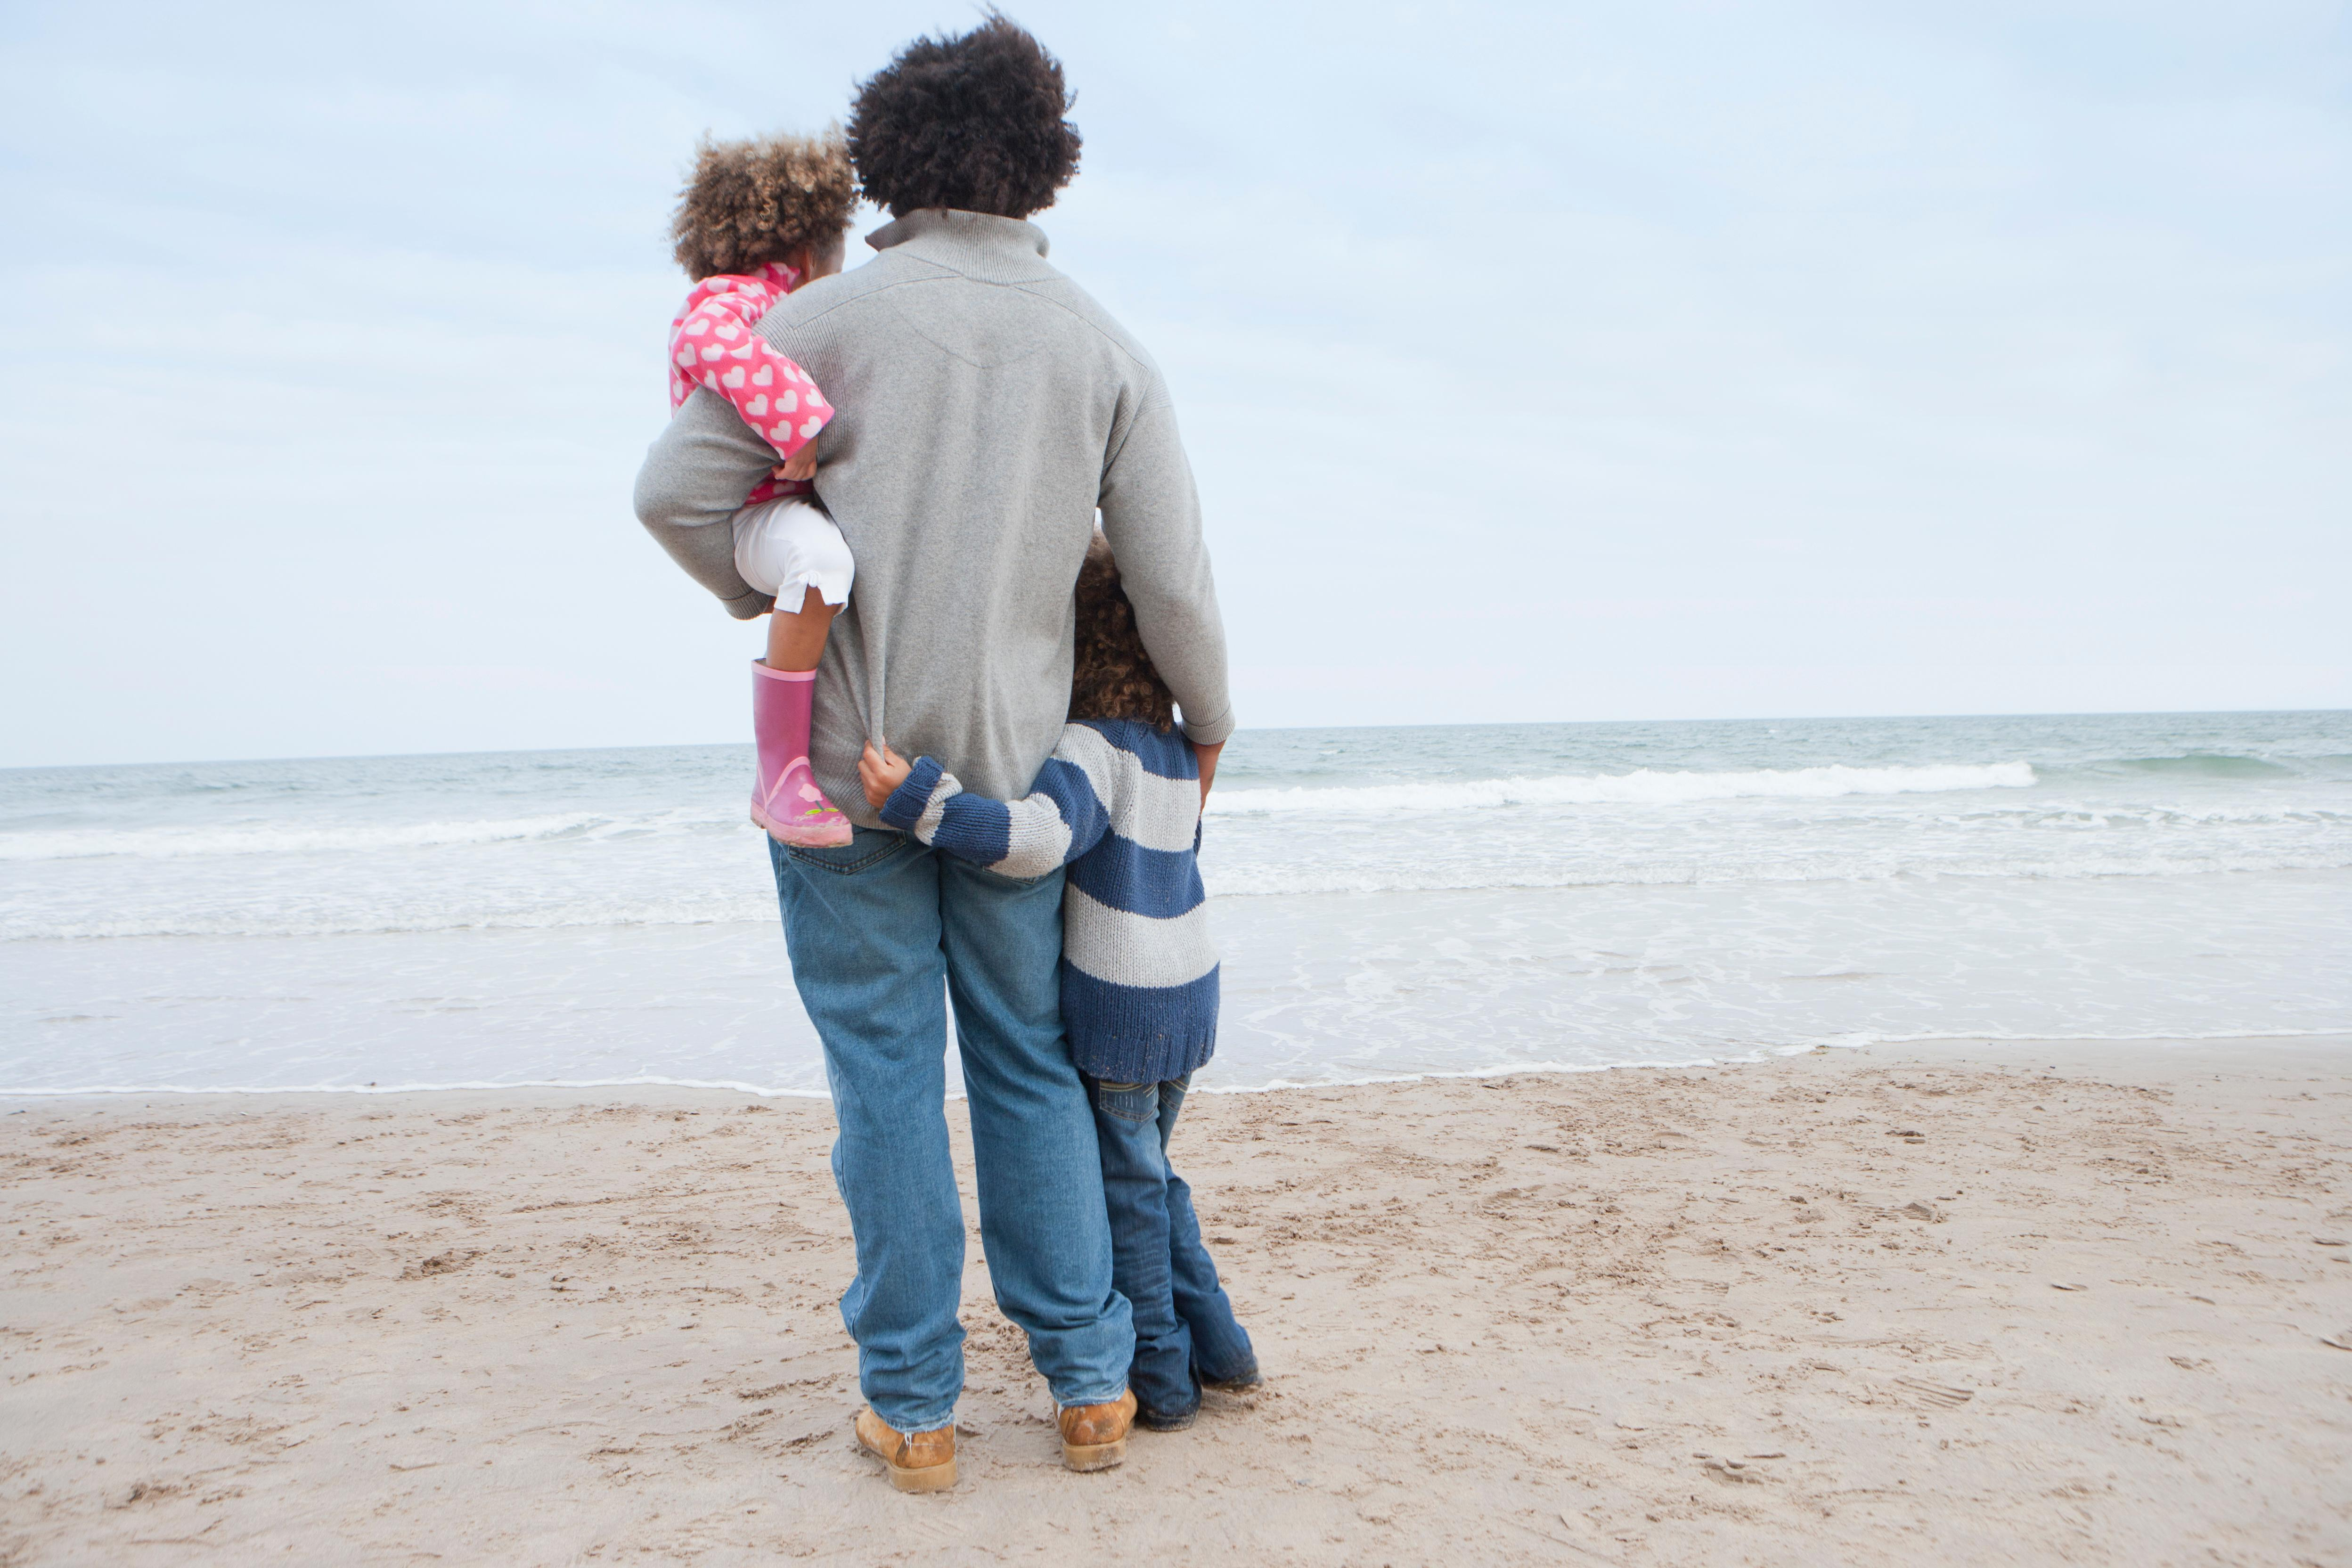 Want gender equality? Then fight for fathers' rights to shared parental leave